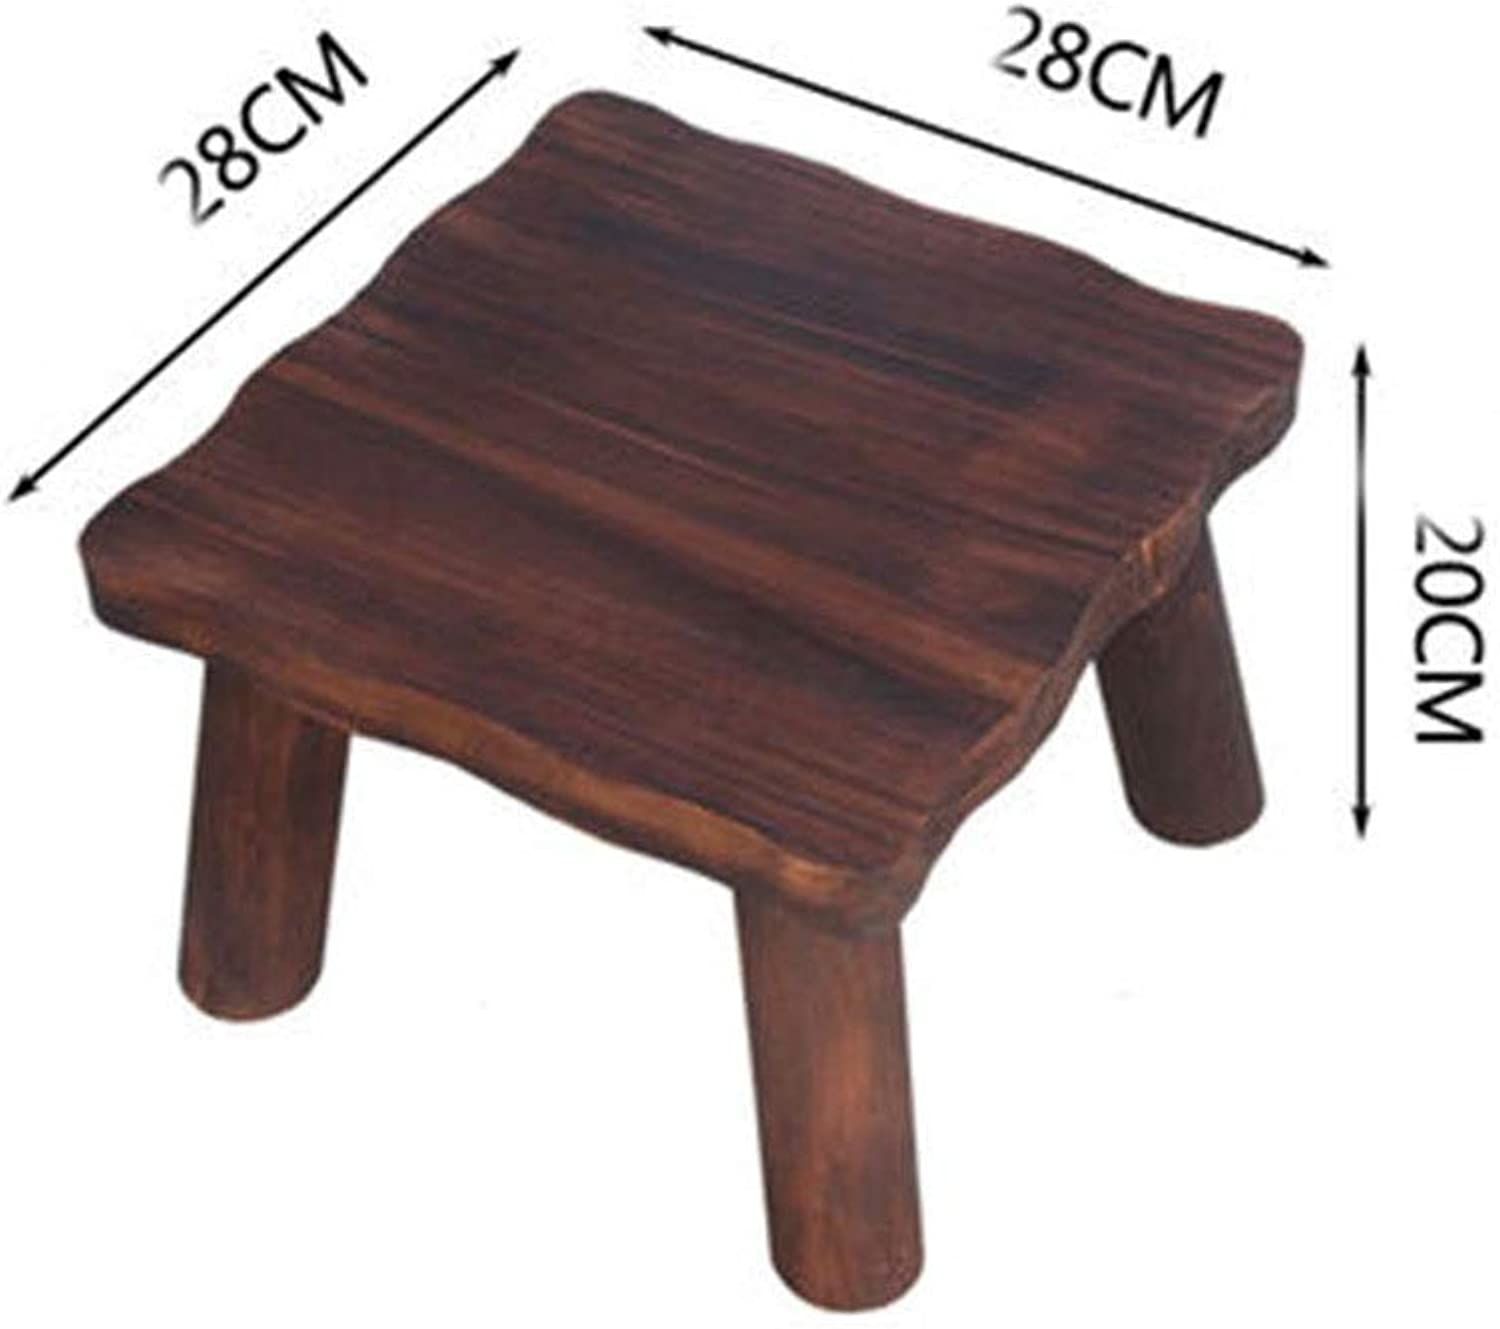 B.YDCM Wooden Bench- Home Stool Coffee Table Low Stool Square Thick Small Bench Anti-Corrosion Wooden Square Stool Adult Wood - Wood Bench (color   B)